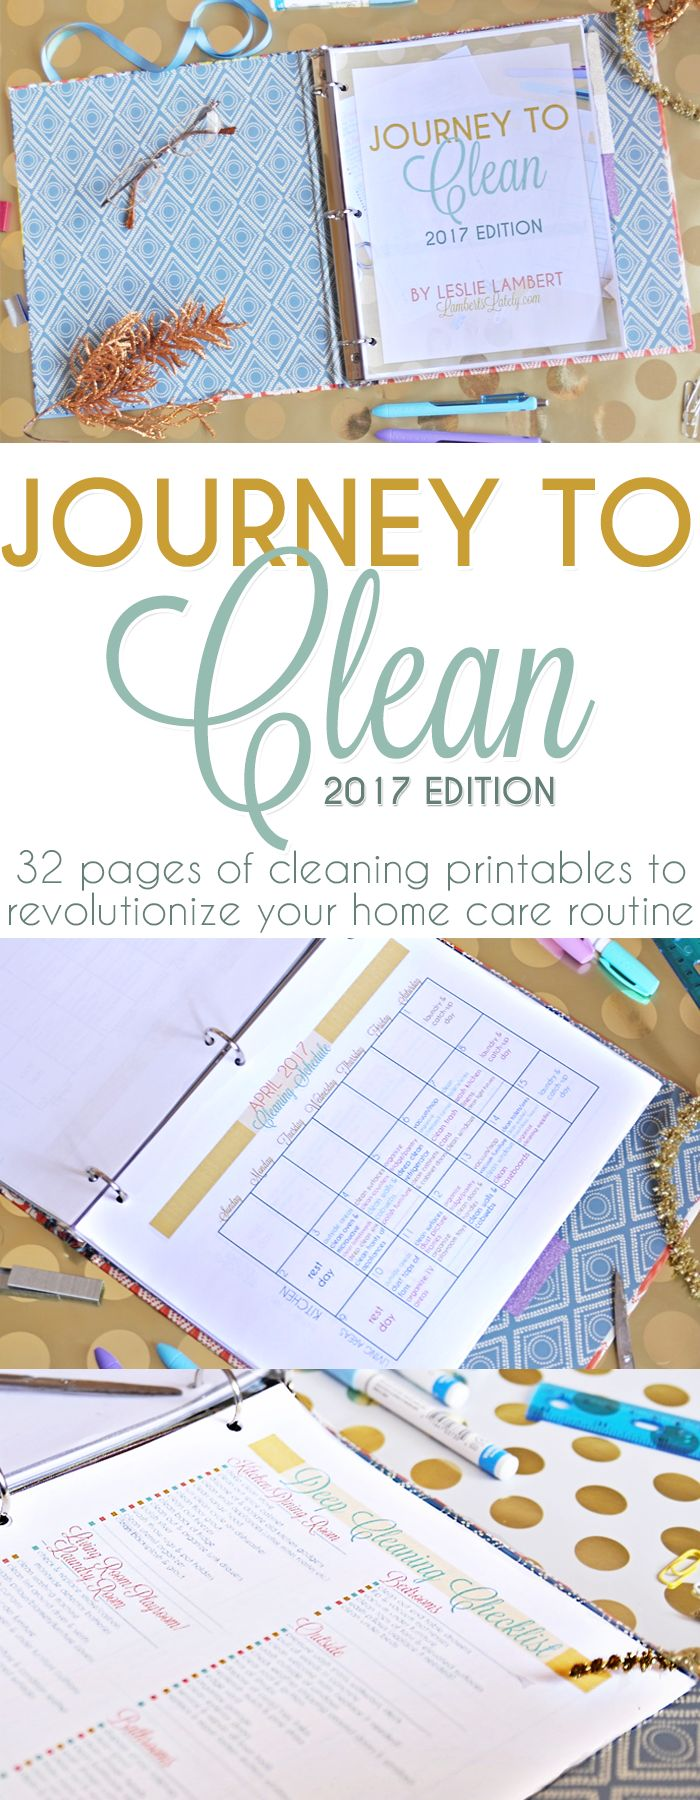 This Journey to Clean eBook is awesome!  This is a collection of printables that let you start a monthly cleaning schedule for your home. It includes a printable notebook and detailed instructions on how to integrate the cleaning schedule into your daily life. Great deep cleaning ideas too!